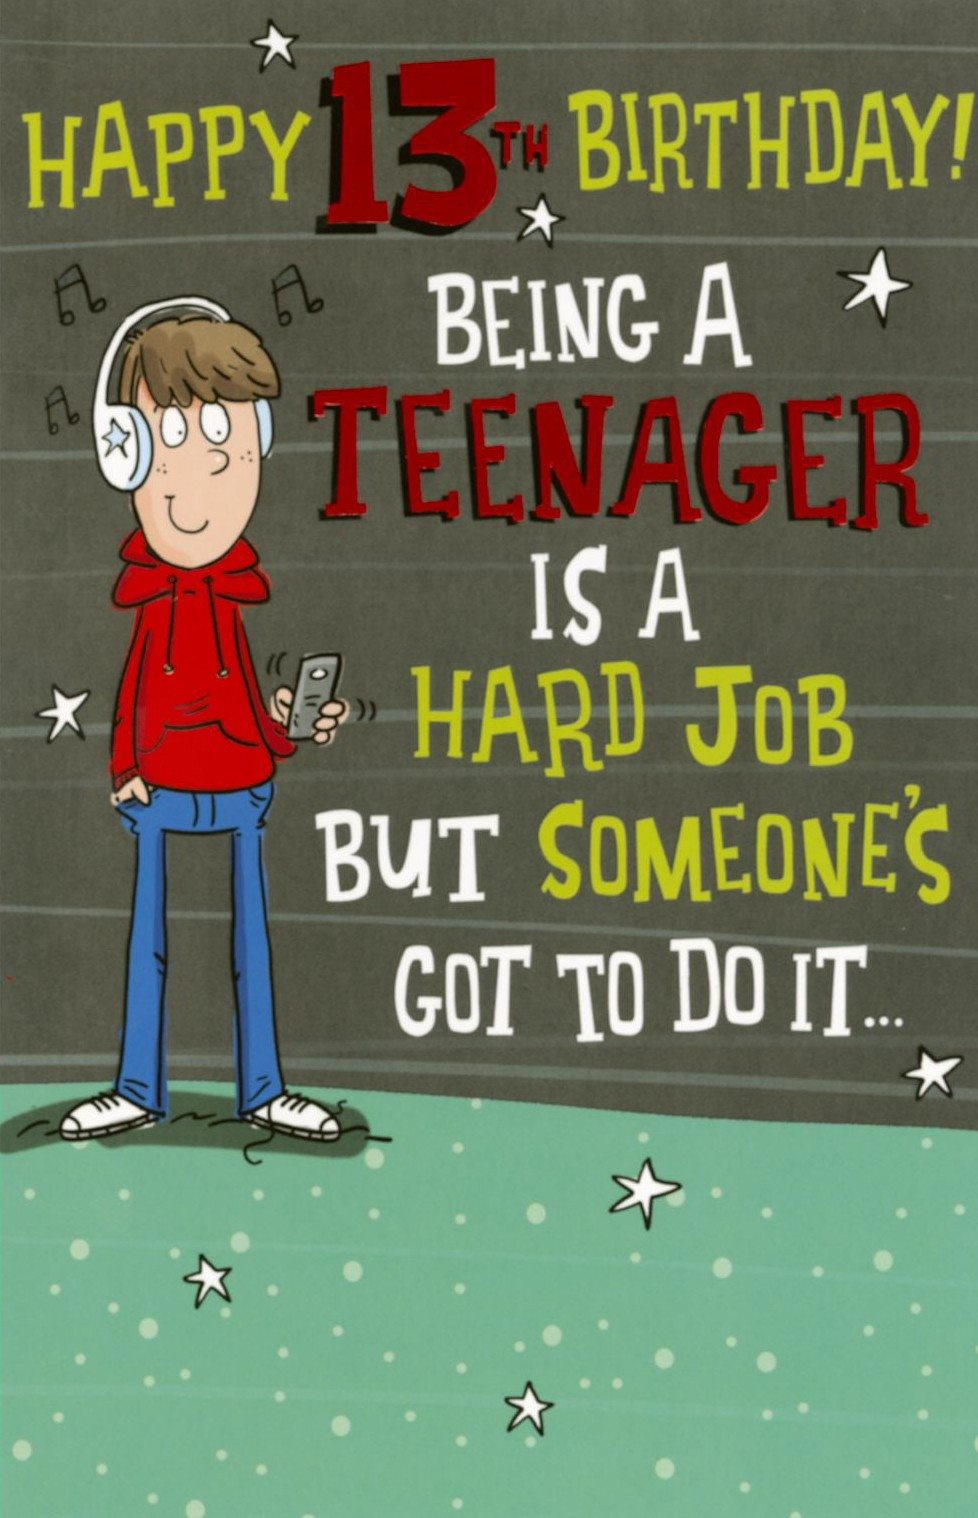 Being A Teenager Is Hard Job